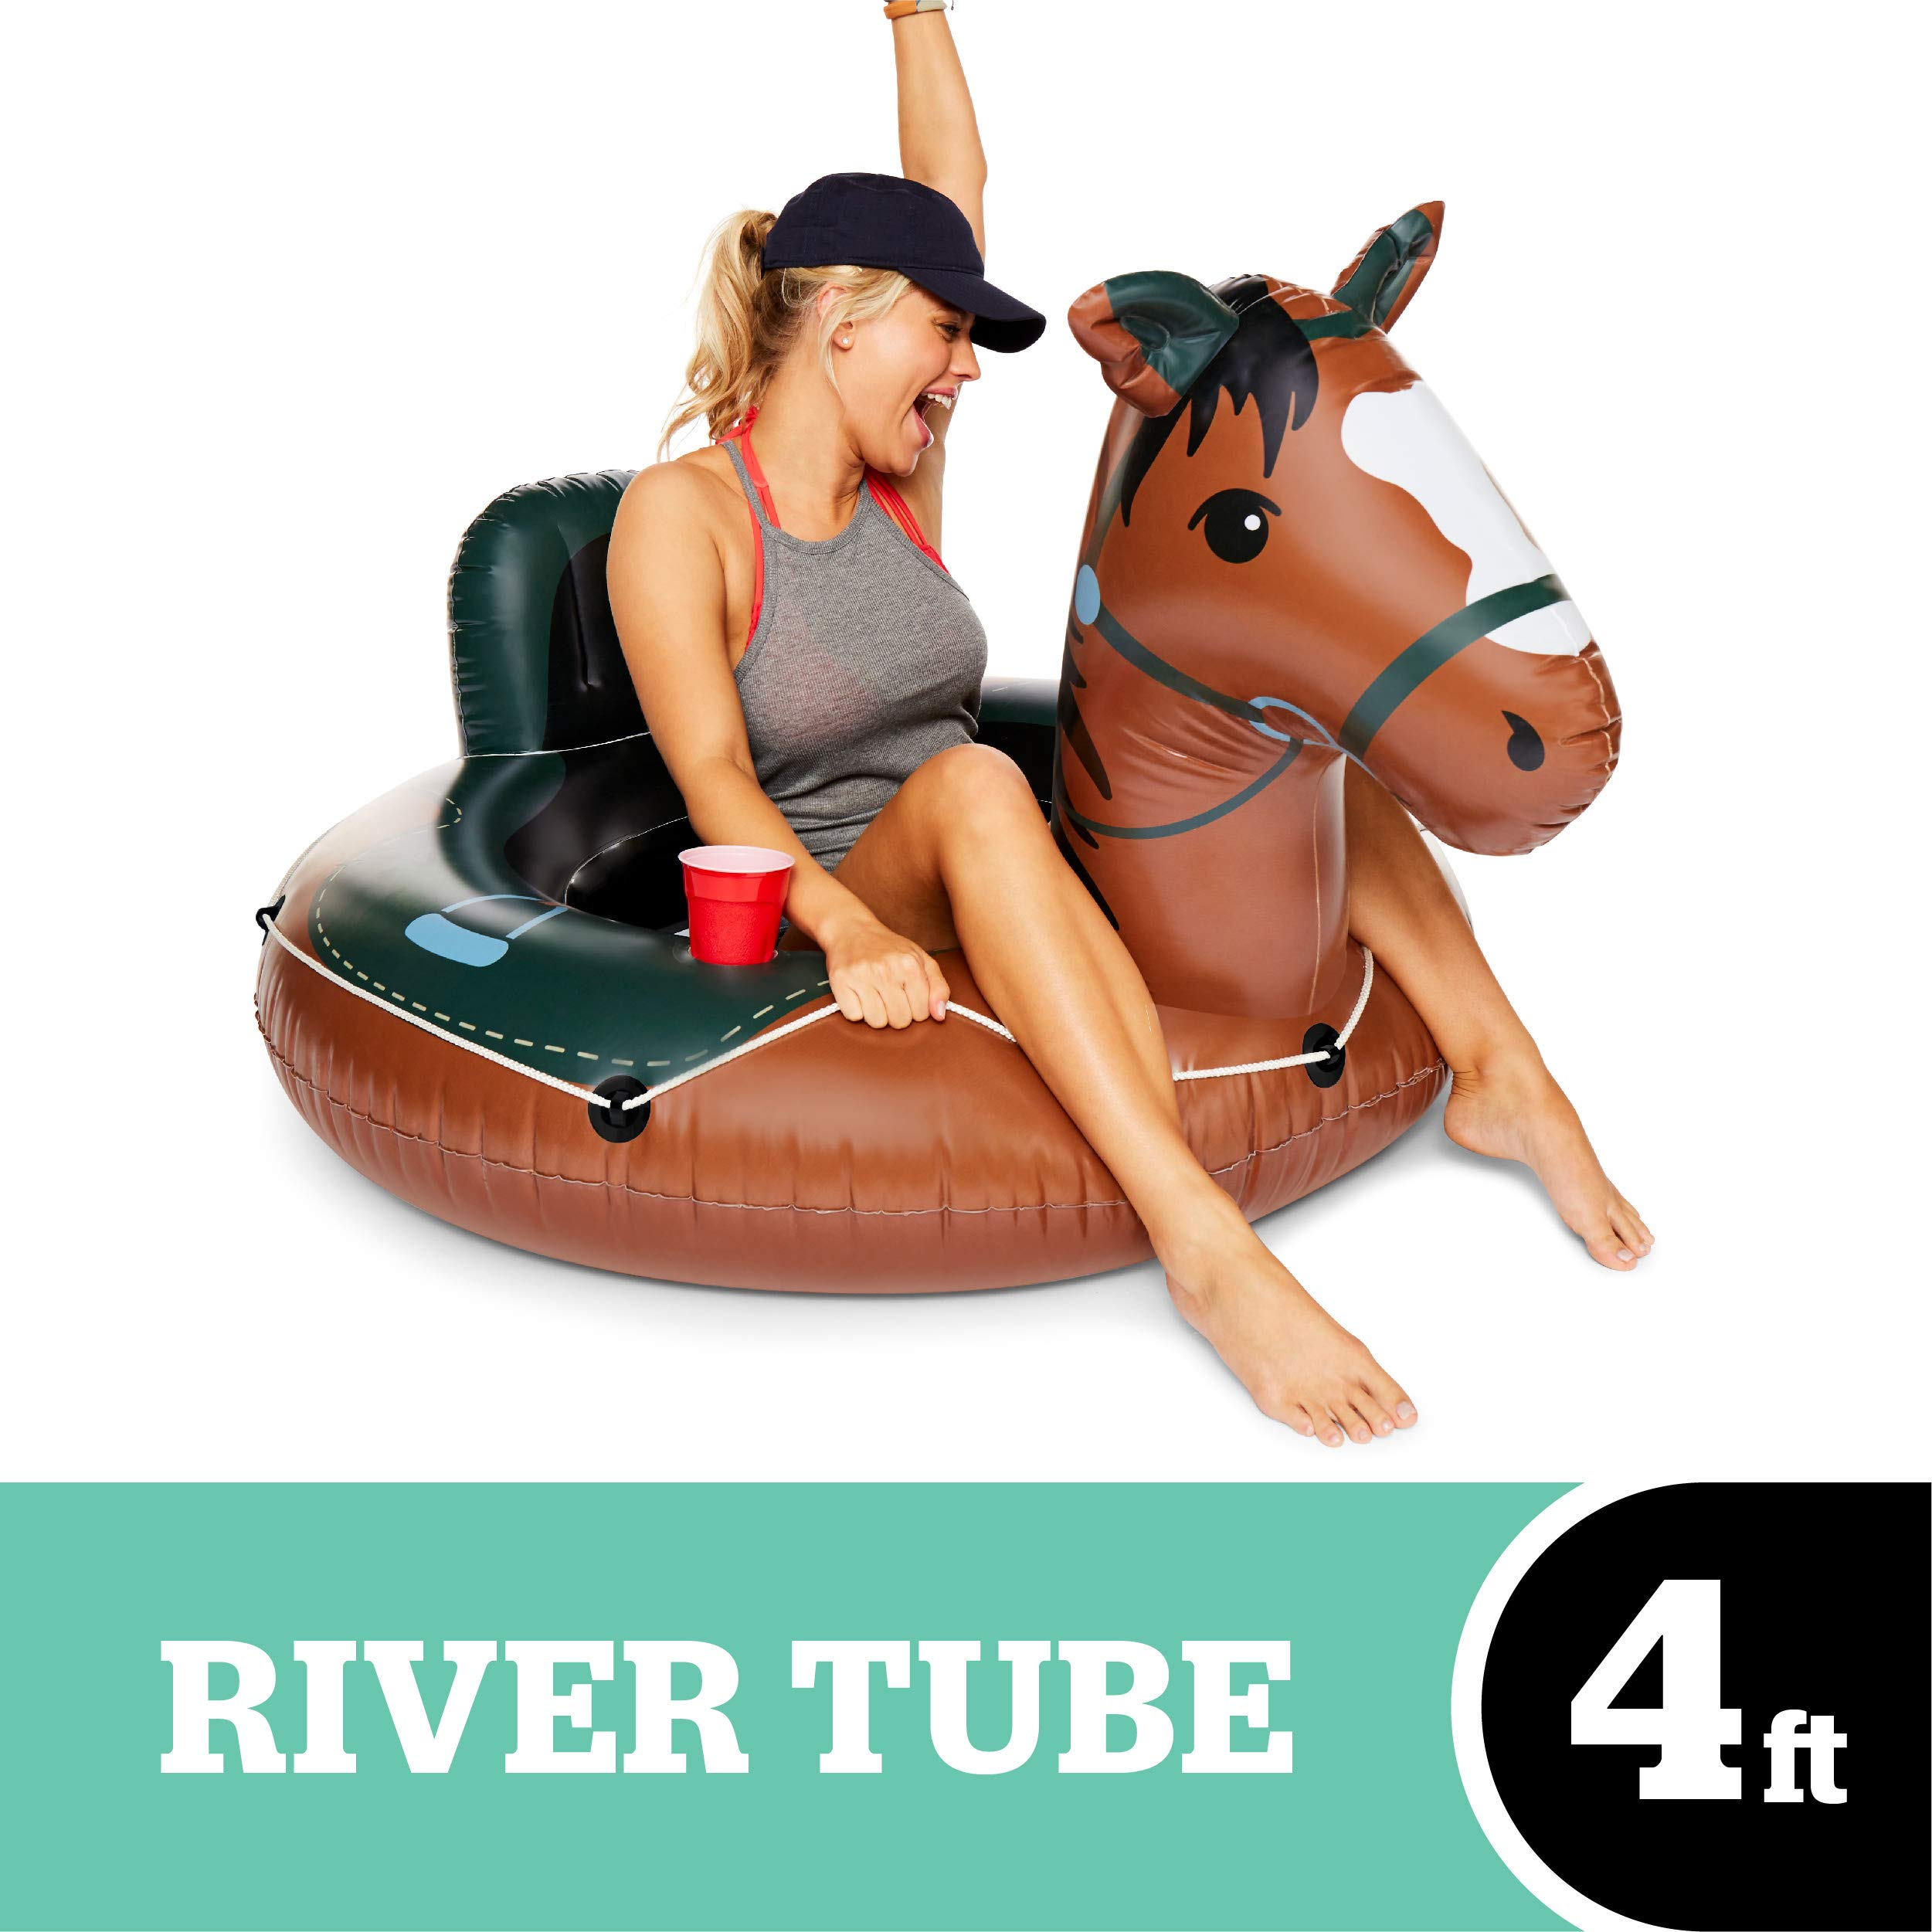 BigMouth Inc Buckin' Bronco Horse River Tube, Giant Inflatable River Tube with Rope, Funny Float by BigMouth Inc